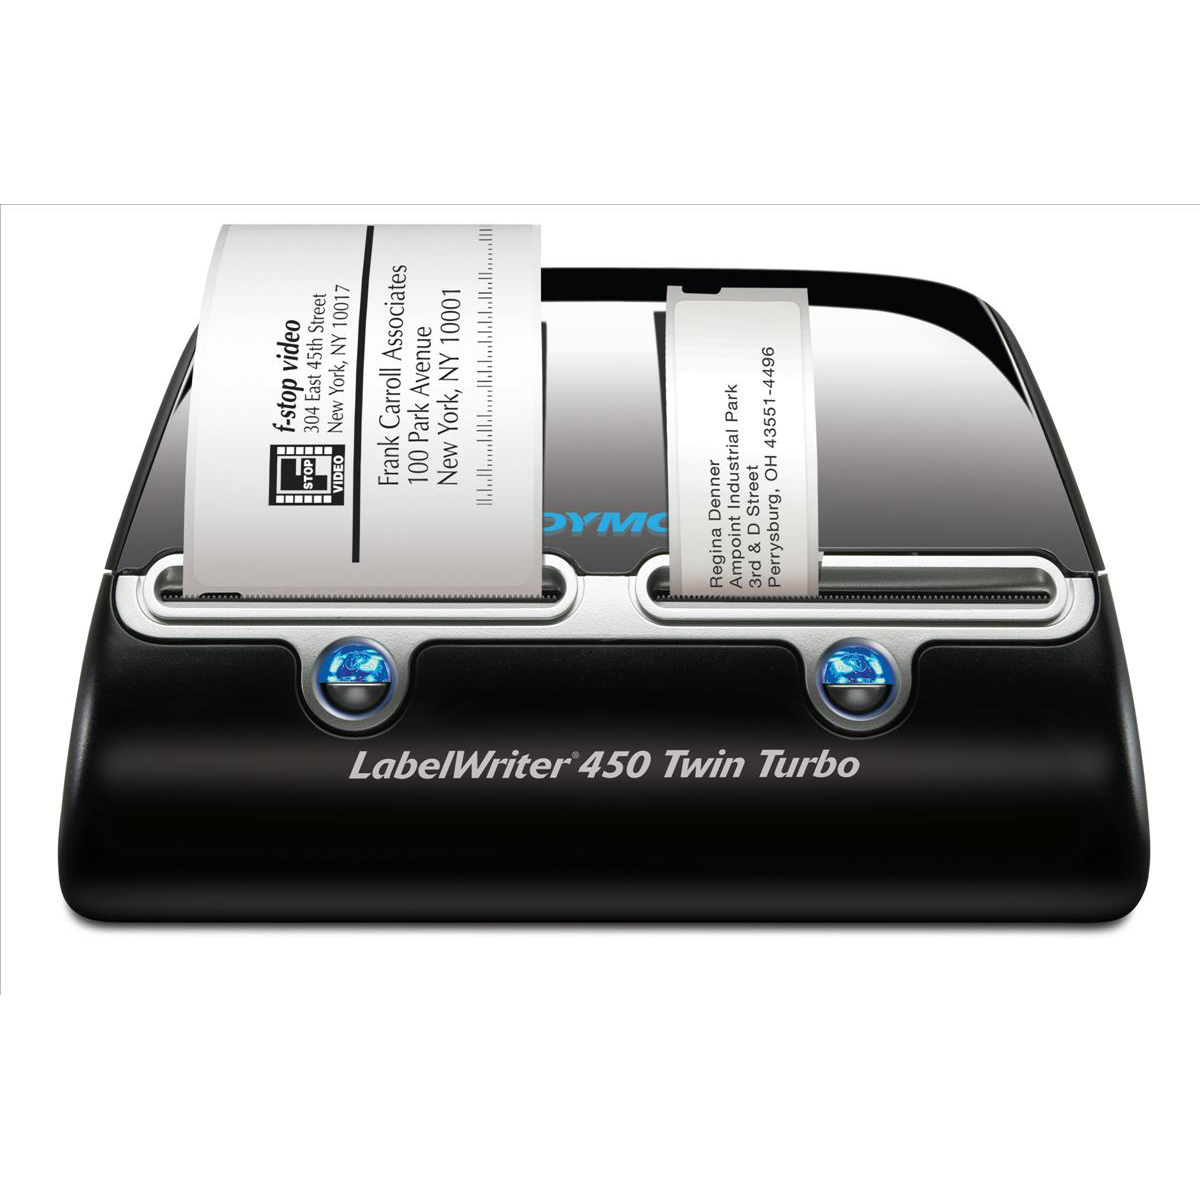 Thermal tape printers Dymo Labelwriter 450 Twin Turbo USB with Software 71 per minute for 13 Types Labels Ref S0838910